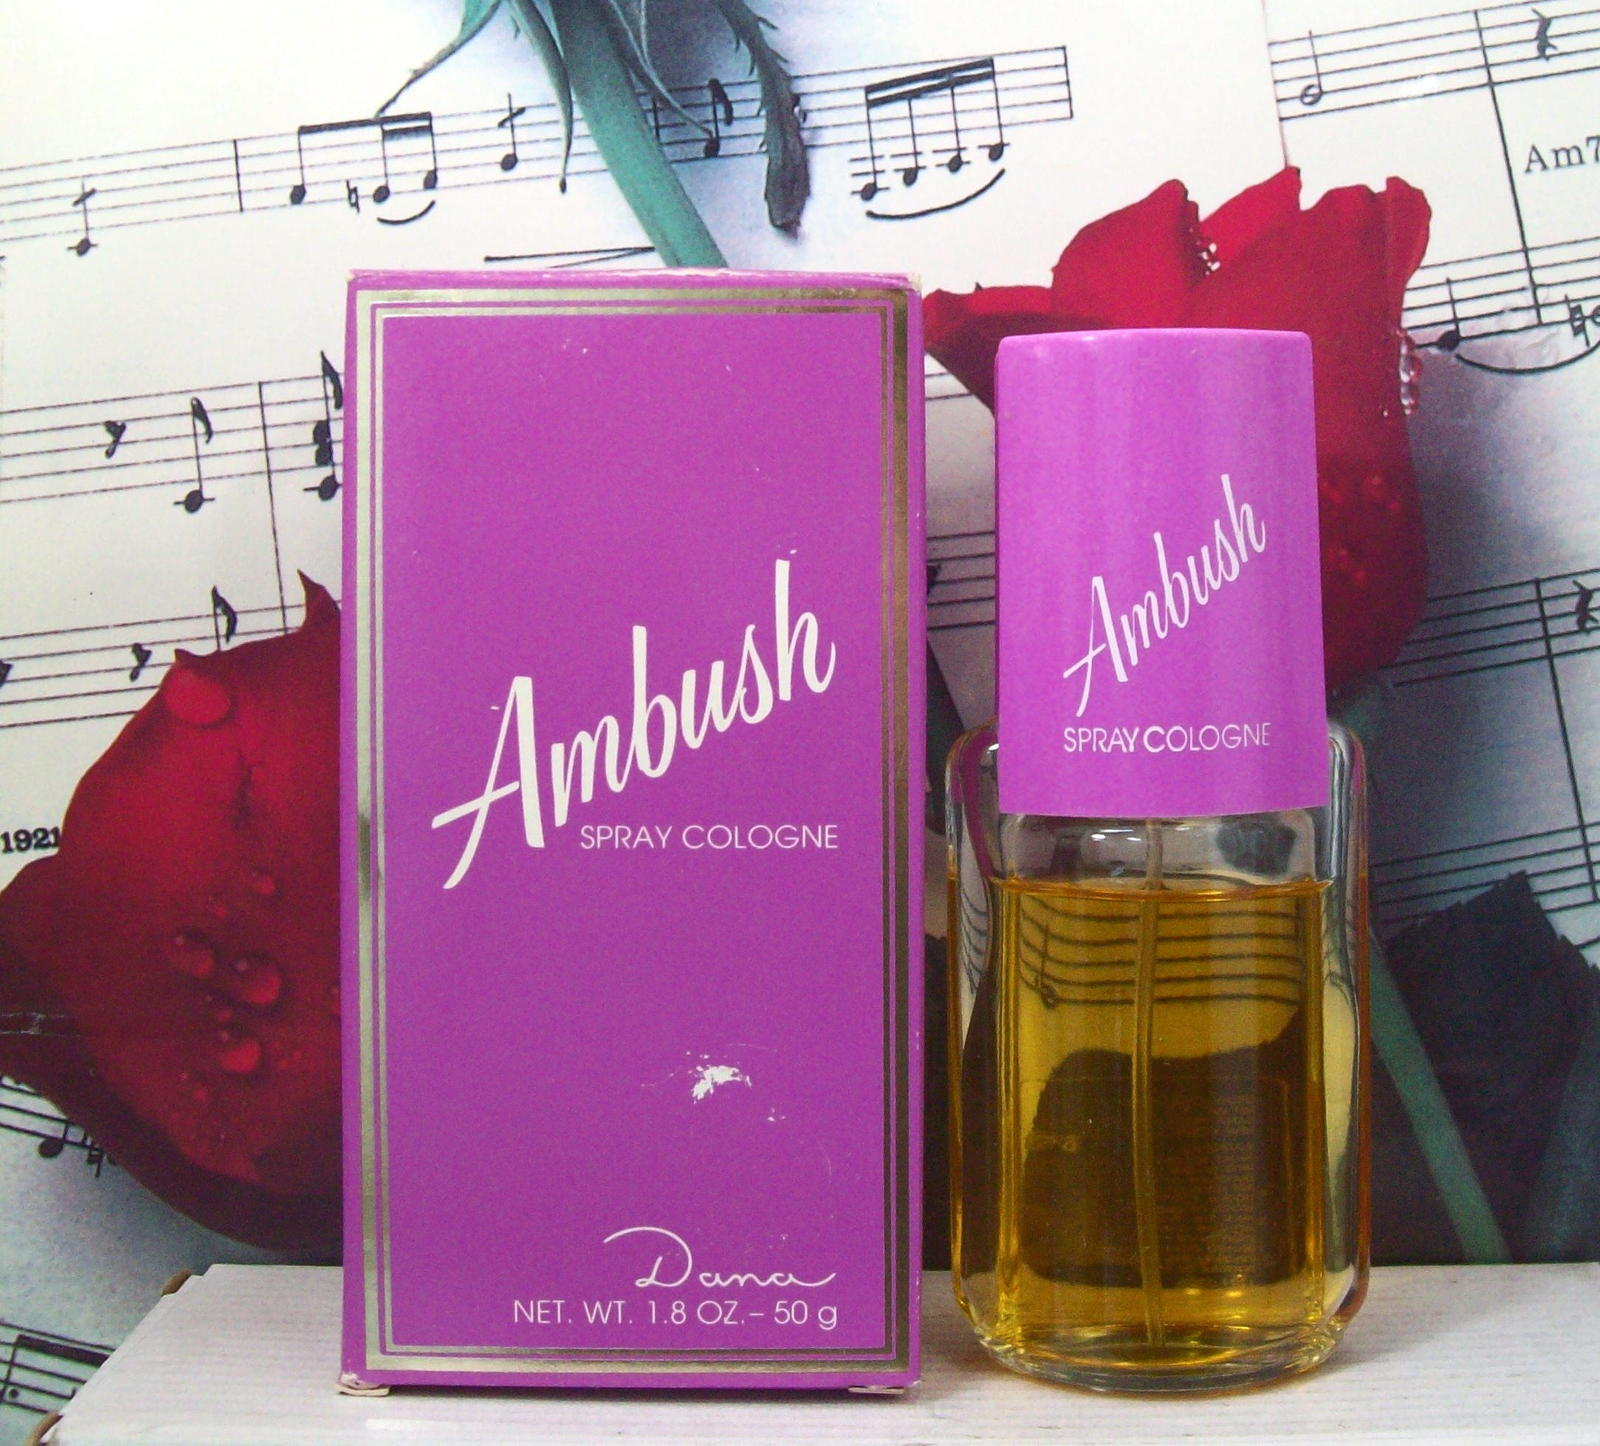 Primary image for Ambush By Dana Spray Cologne 1.8 FL. OZ. NWB.